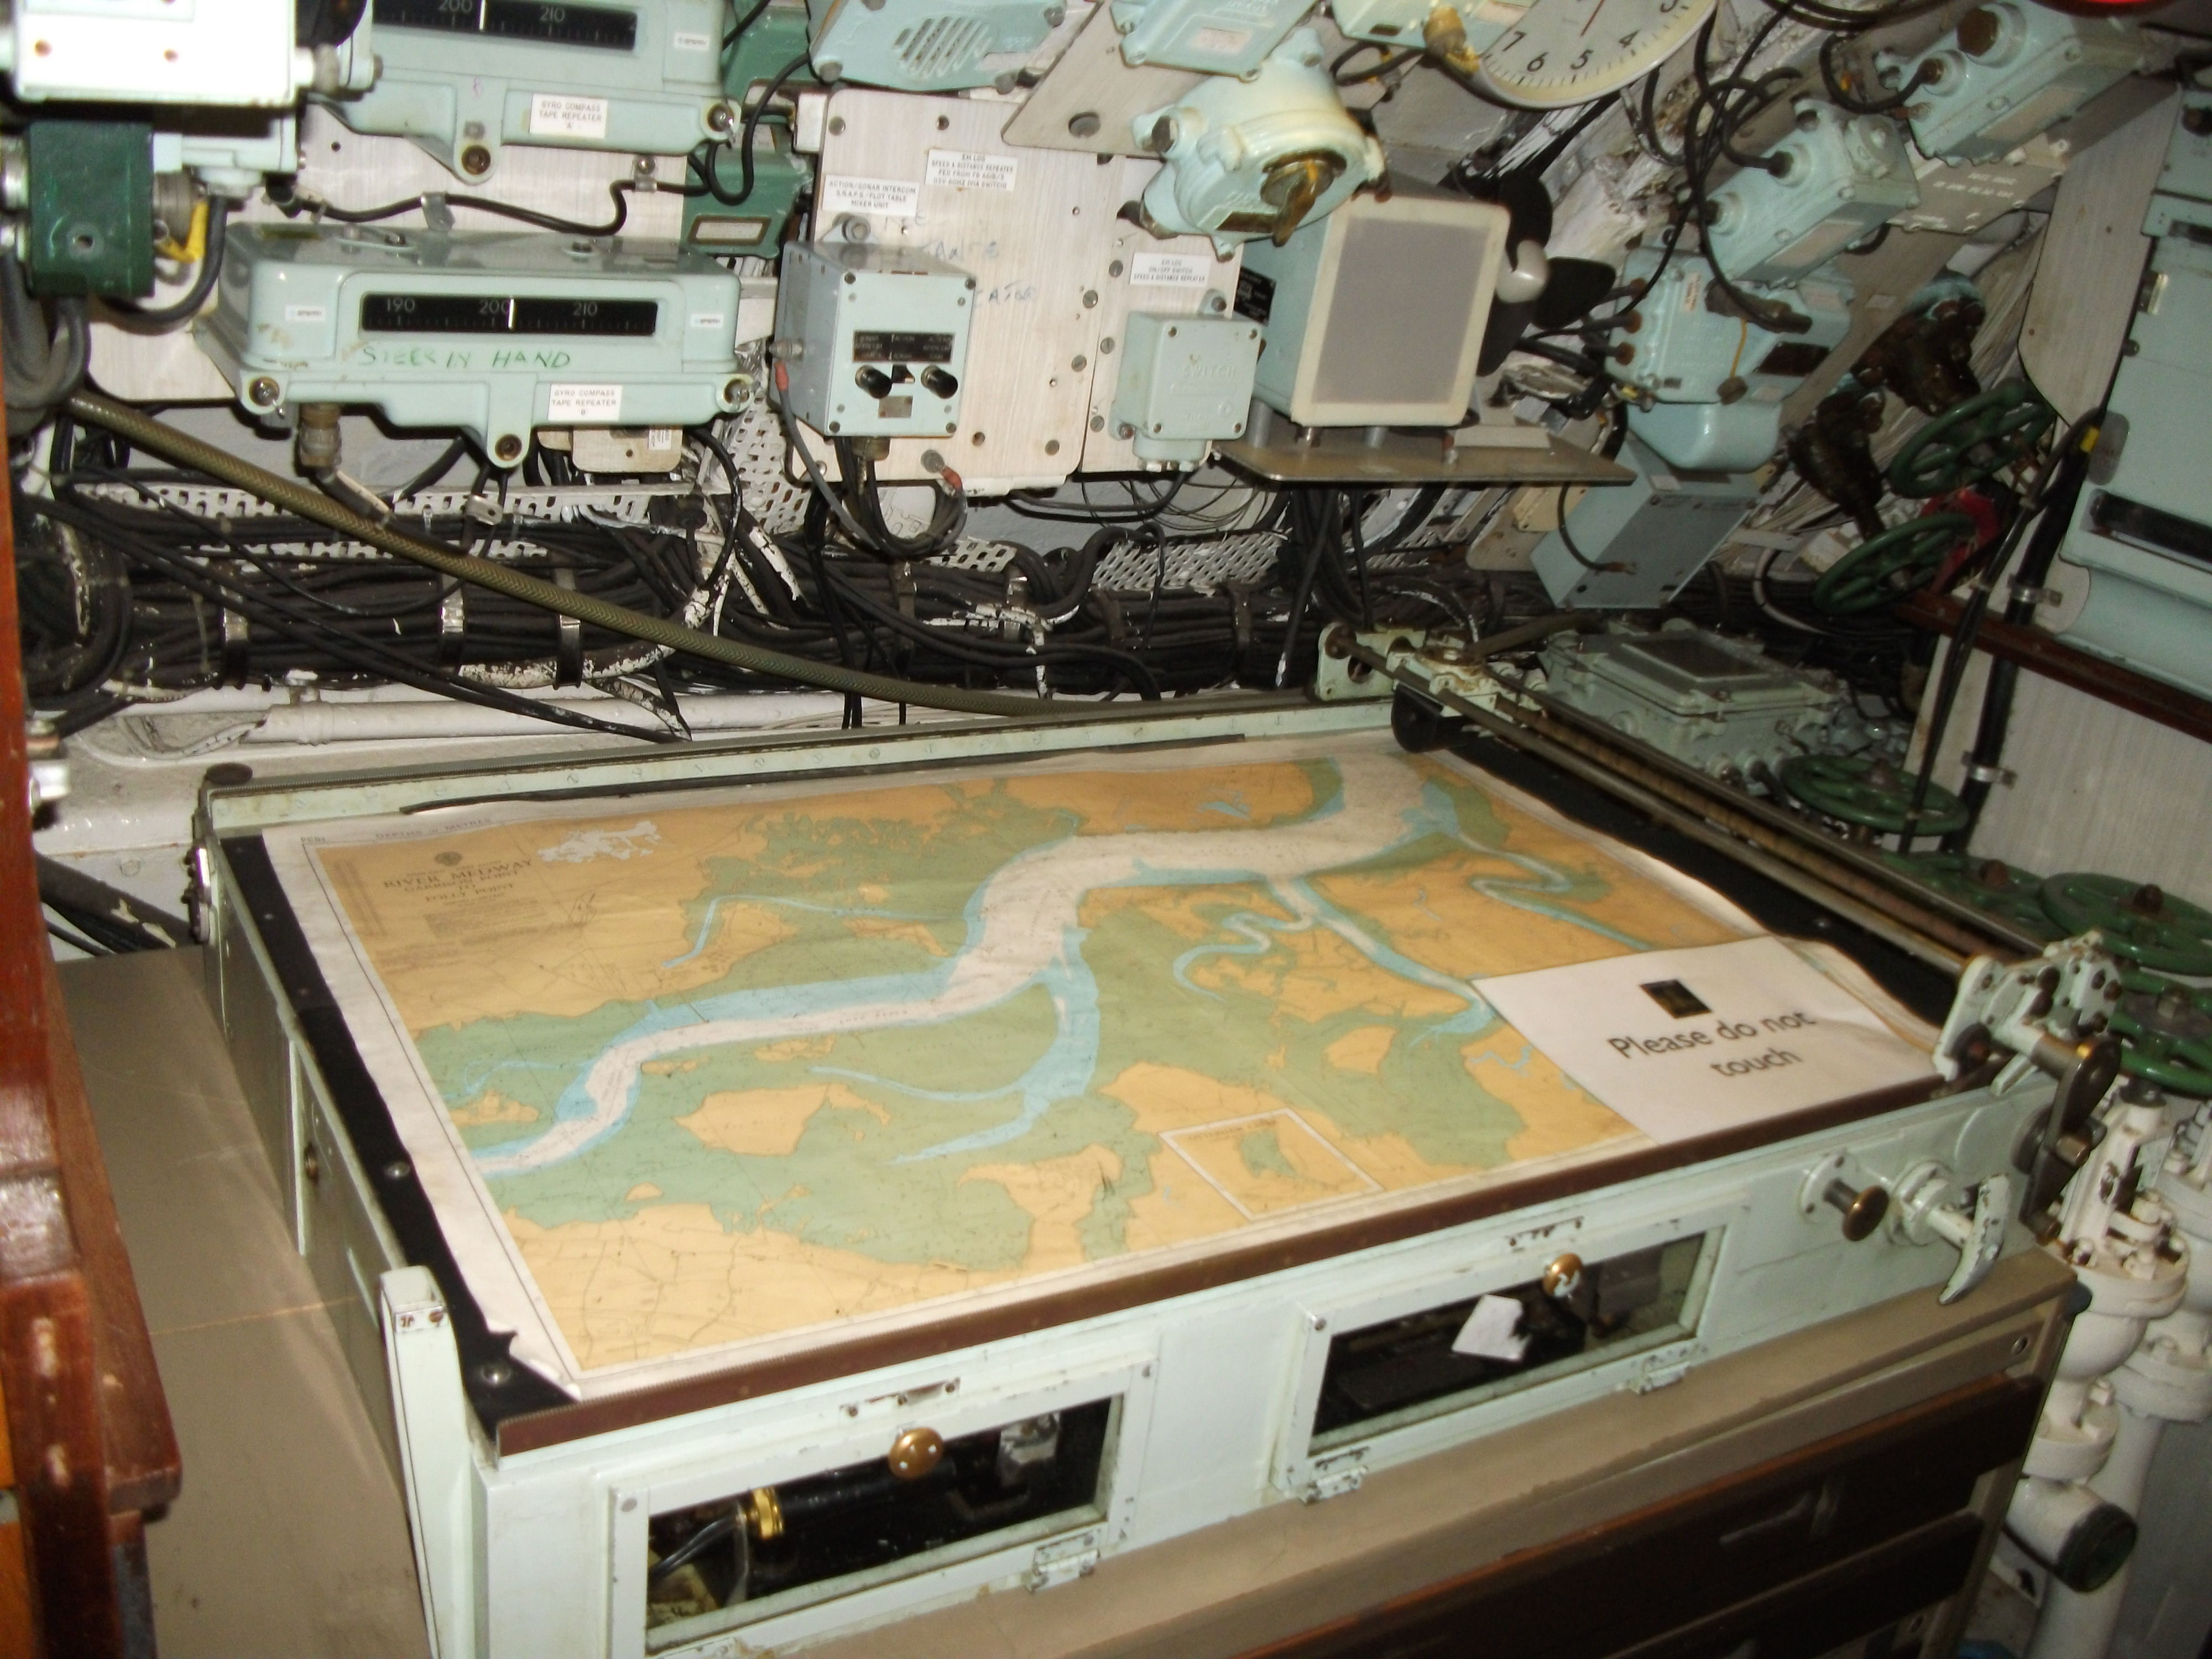 X Table Chart: HMS Ocelot 1962 control room chart table.JPG - Wikimedia Commons,Chart